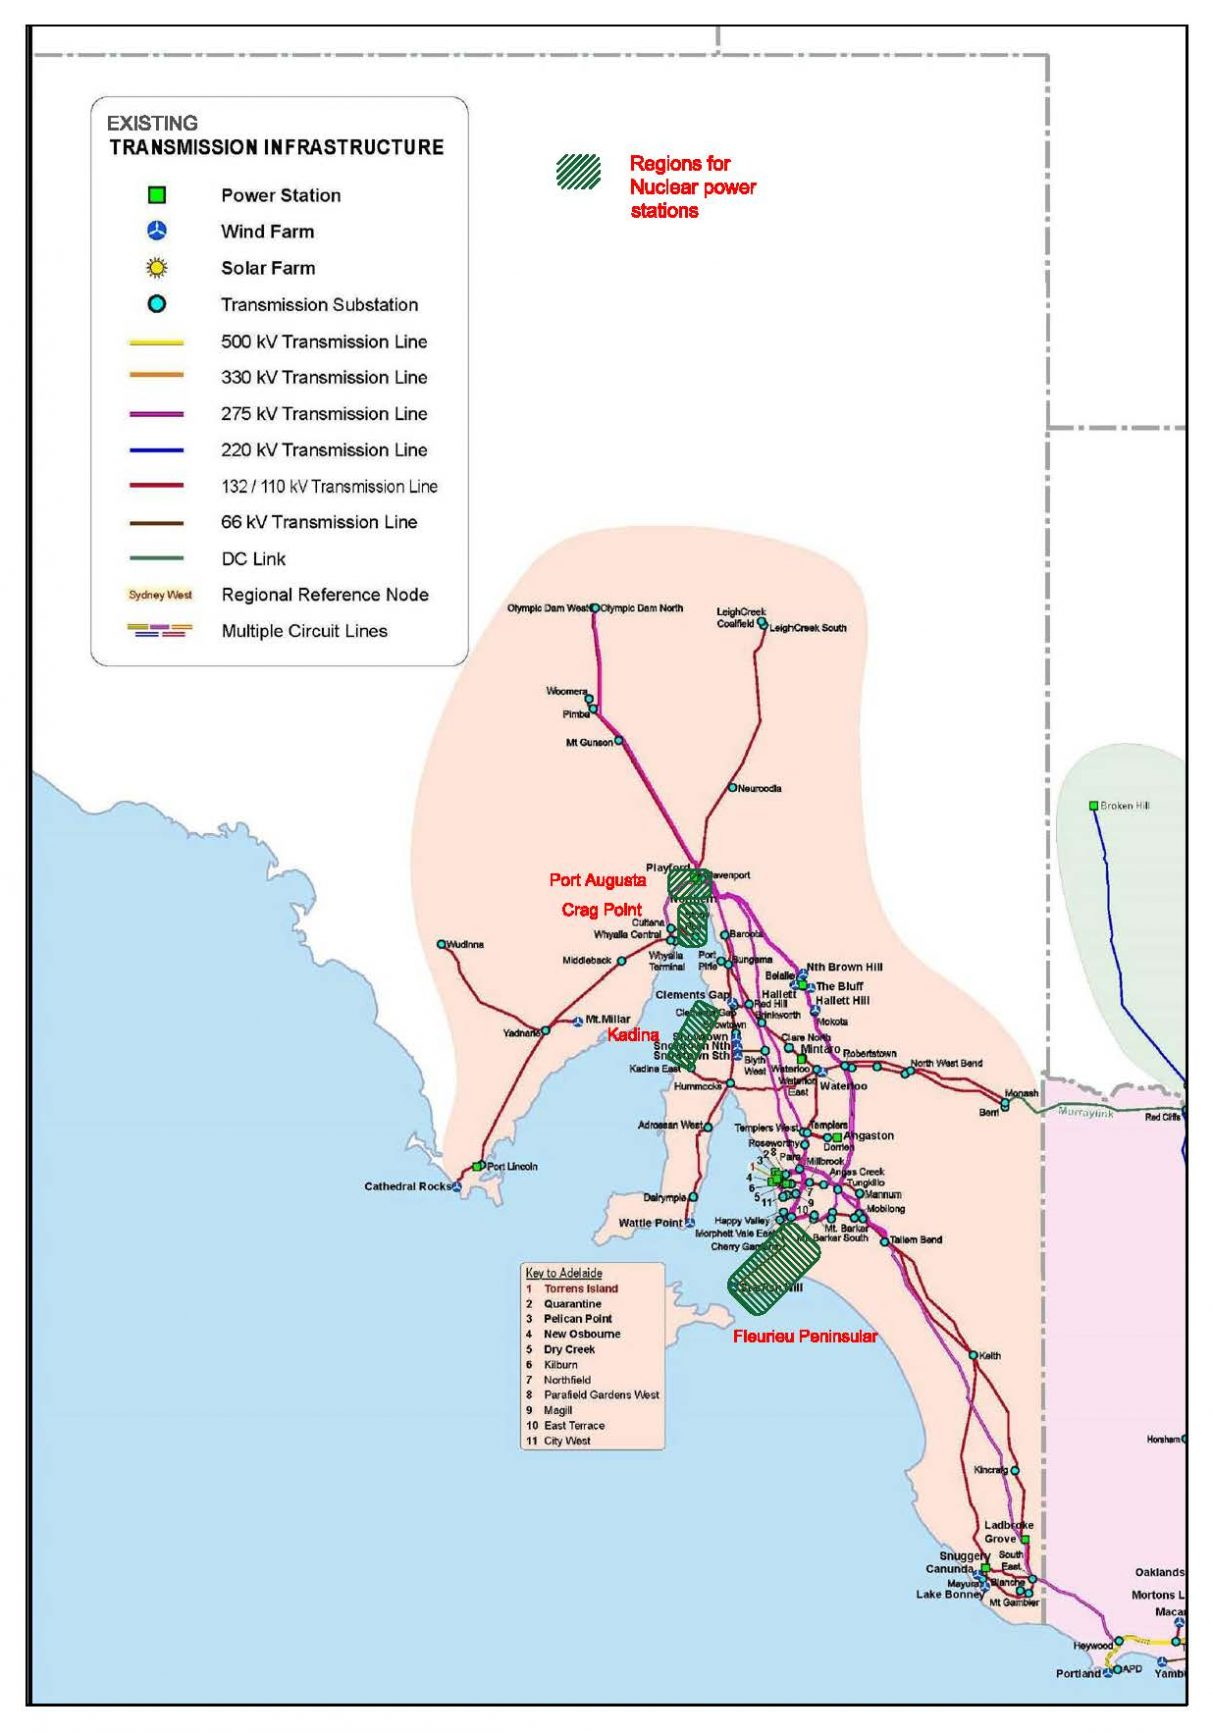 South Australian regions of interest for nuclear power stations